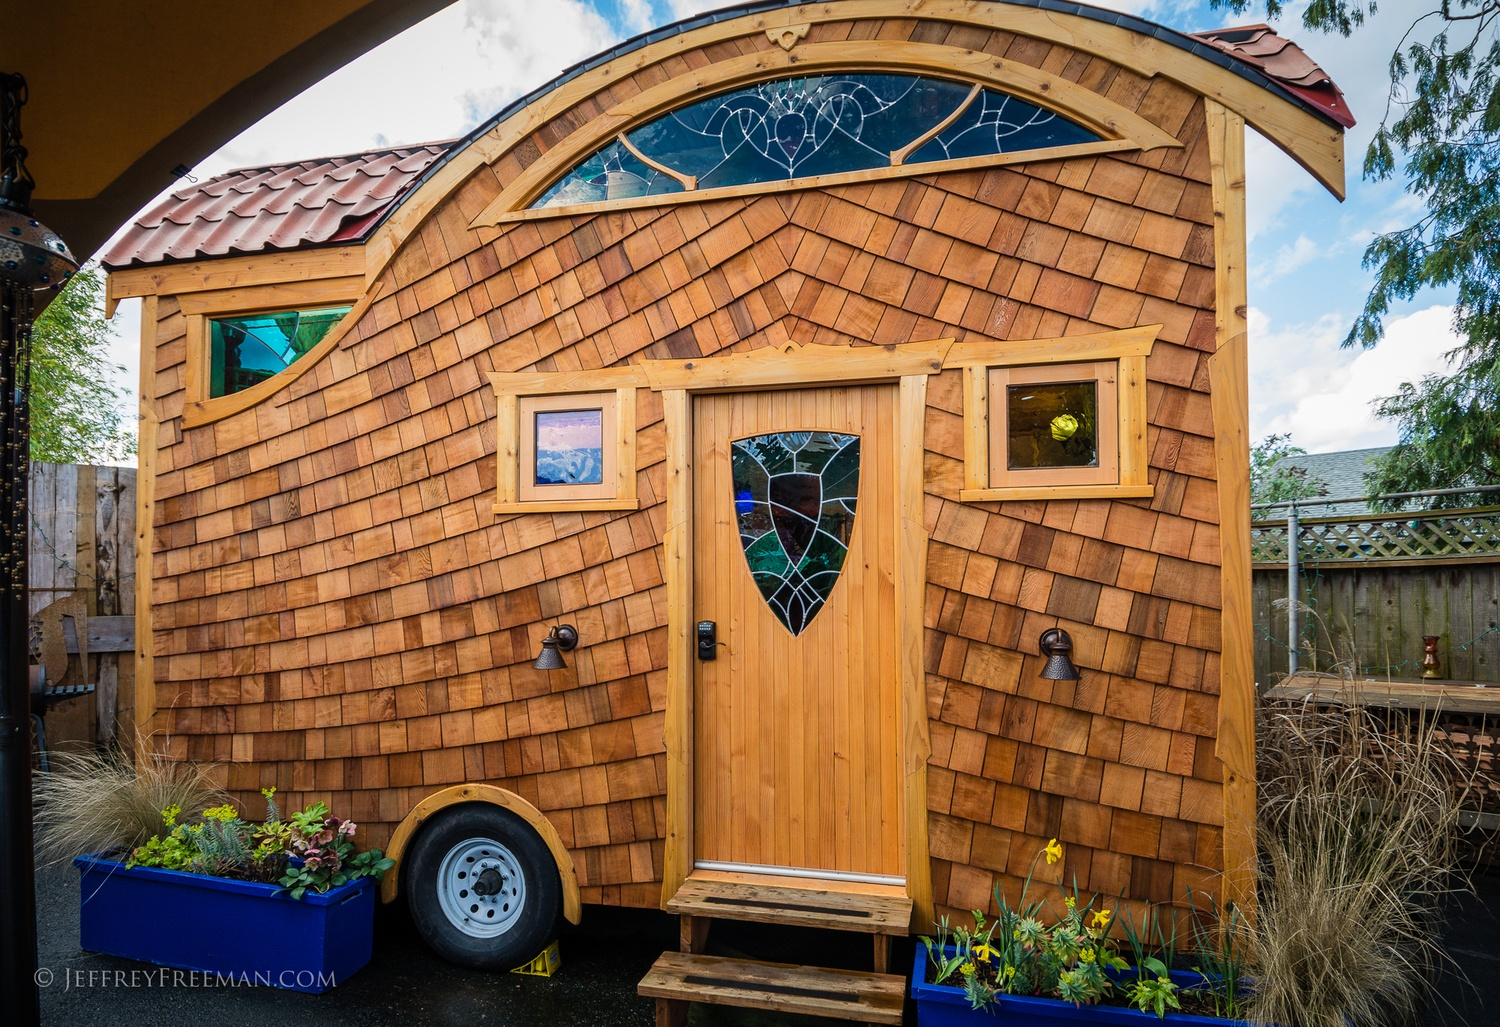 Pacifica by Zyl Vardos at the Tiny House Hotel